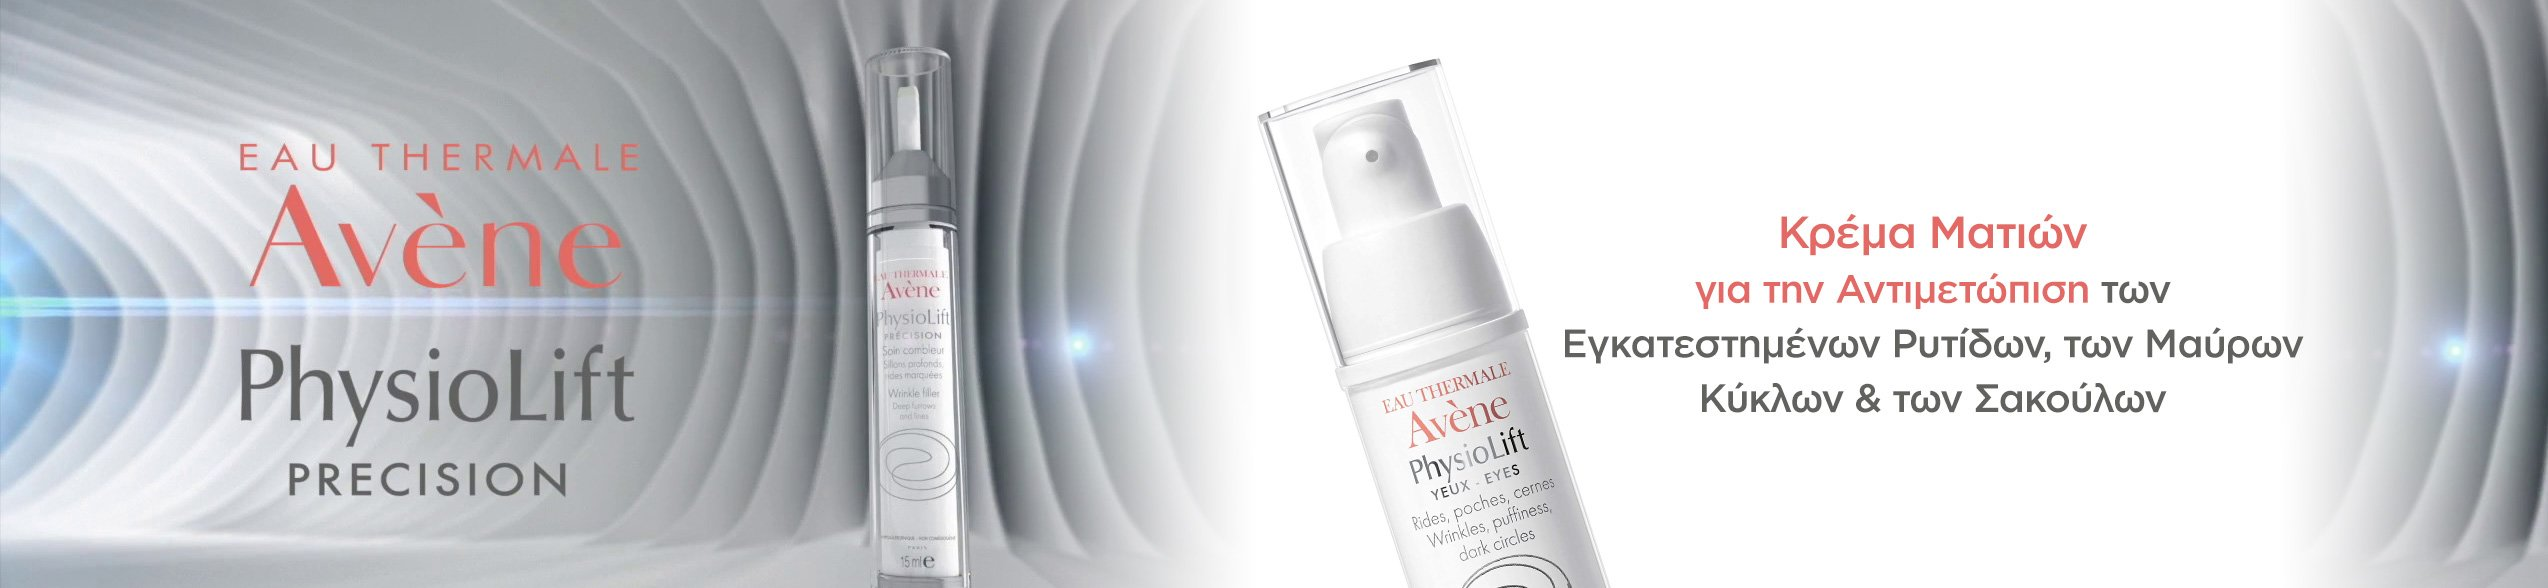 Avene Physiolift Yeux